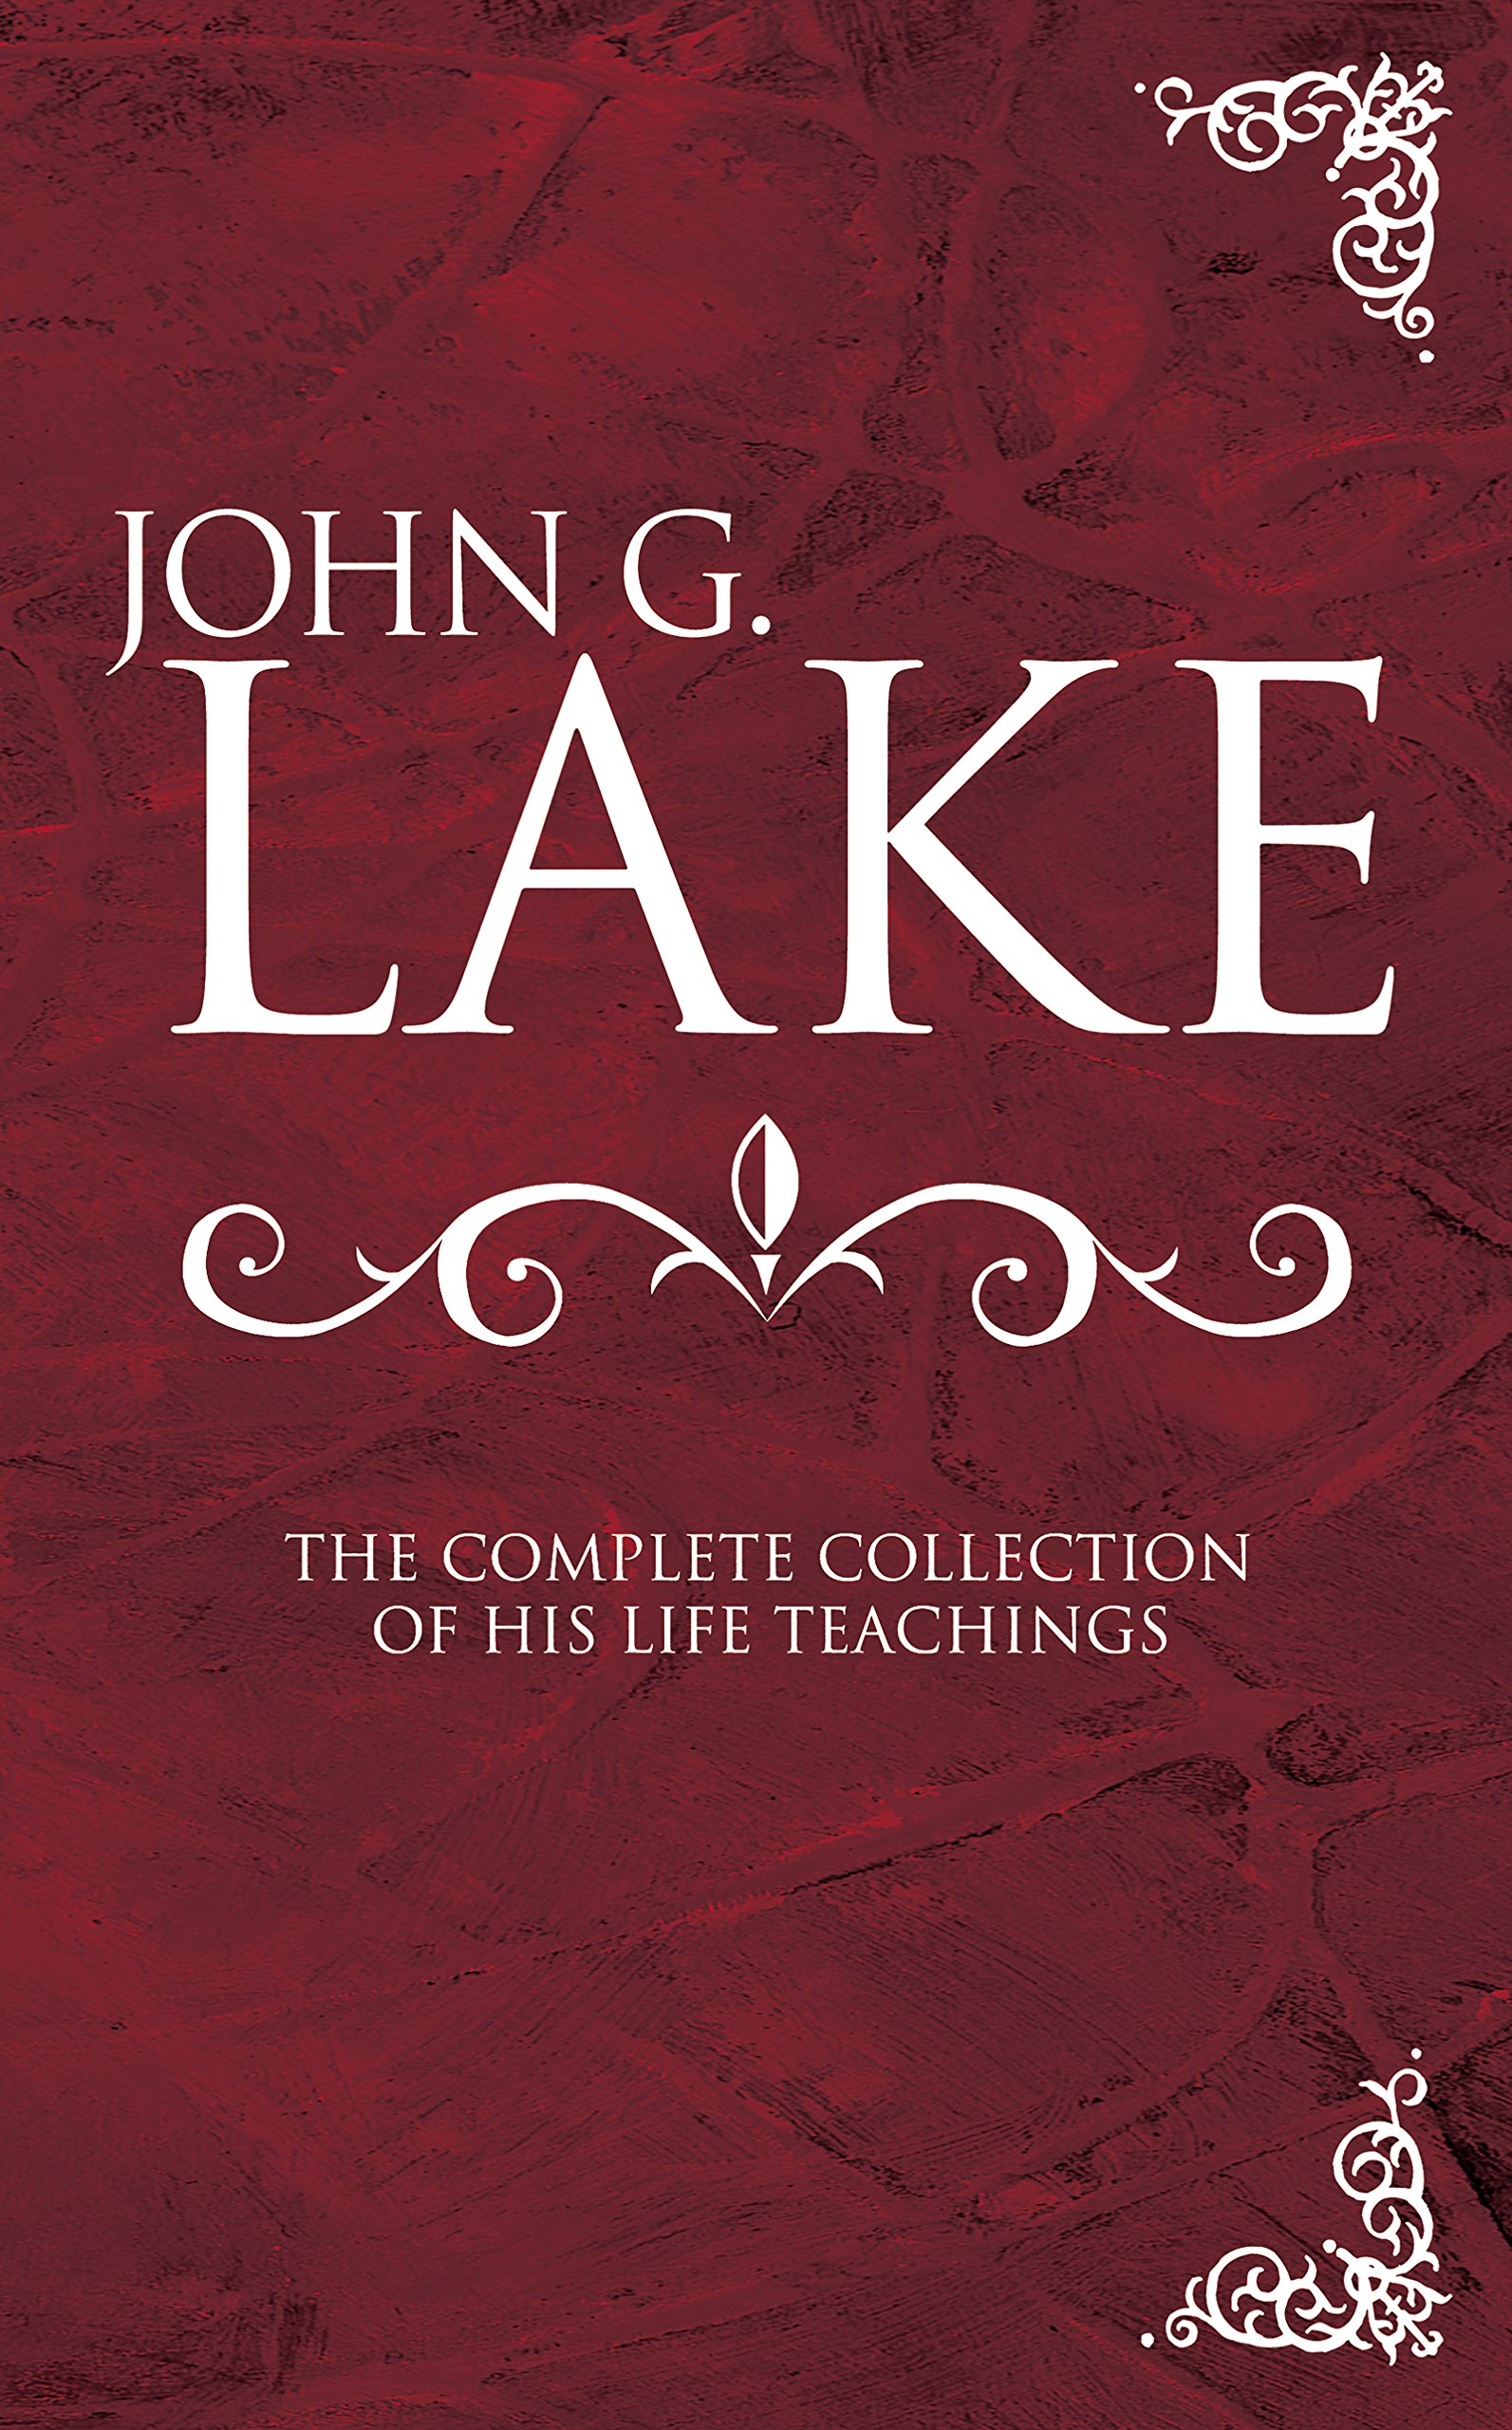 John G. Lake: The Complete Collection of His Life Teachings: John G. Lake,  Roberts Liardon: 0630809685681: Amazon.com: Books